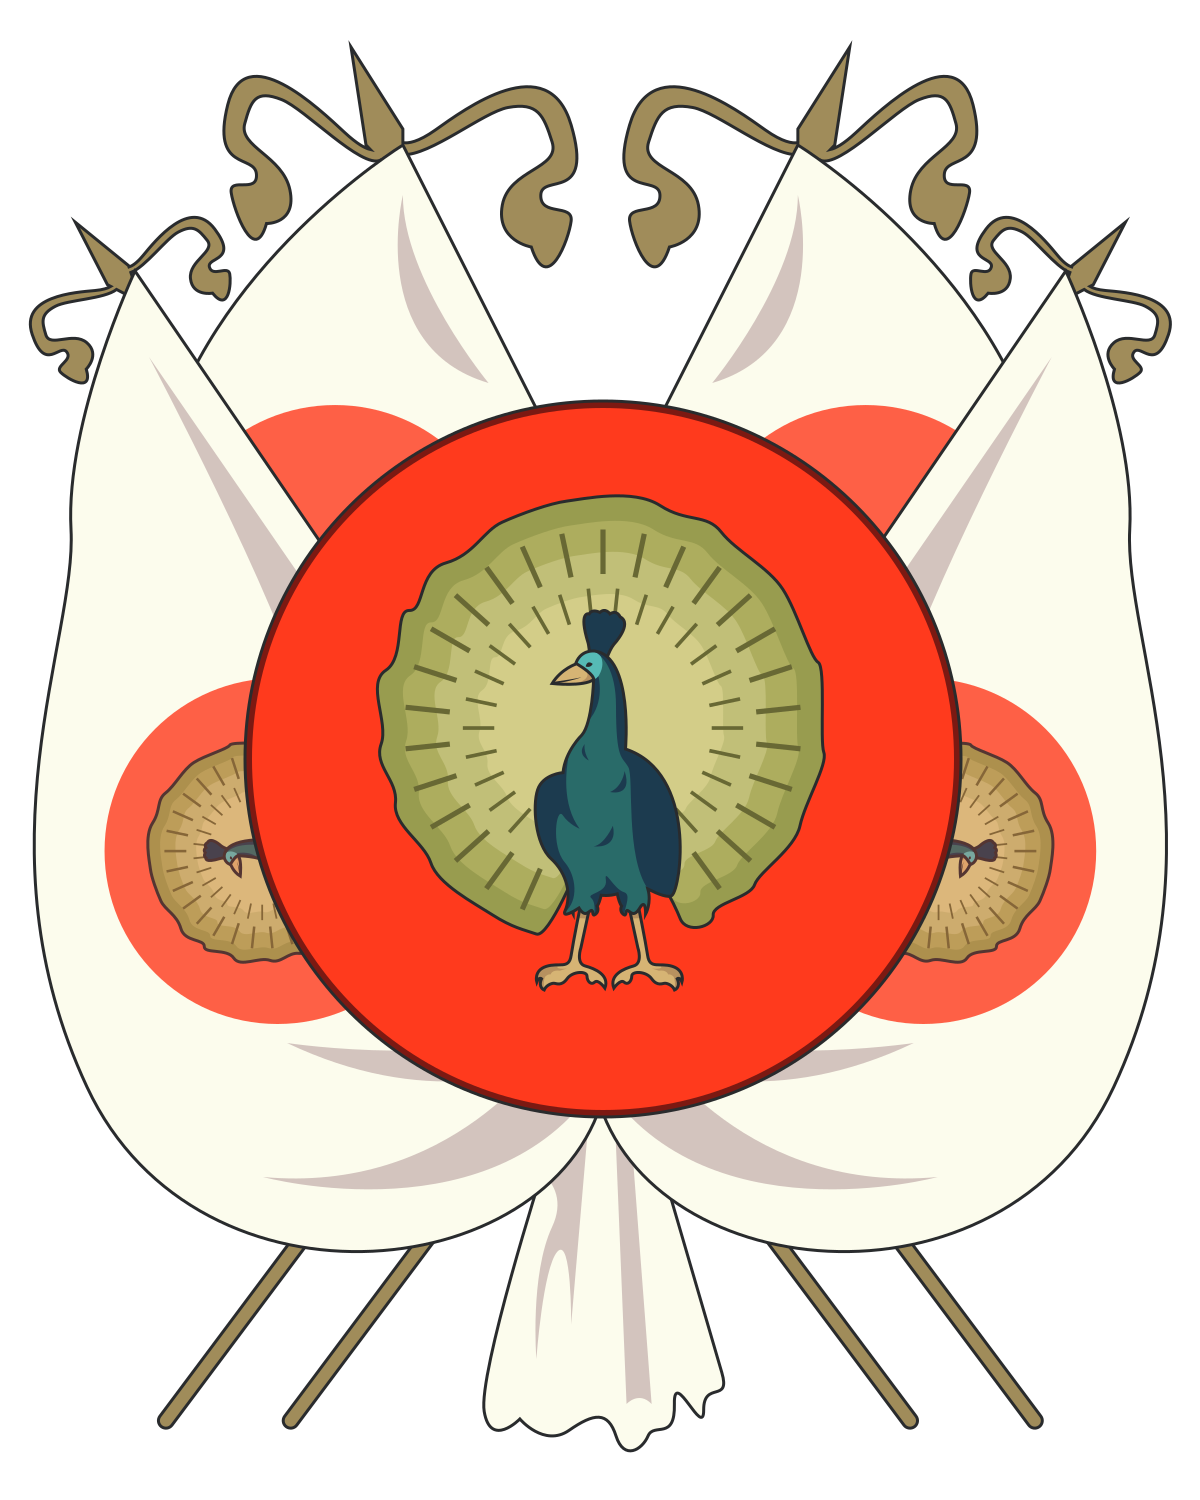 Circle arms png. Konbaung dynasty wikipedia